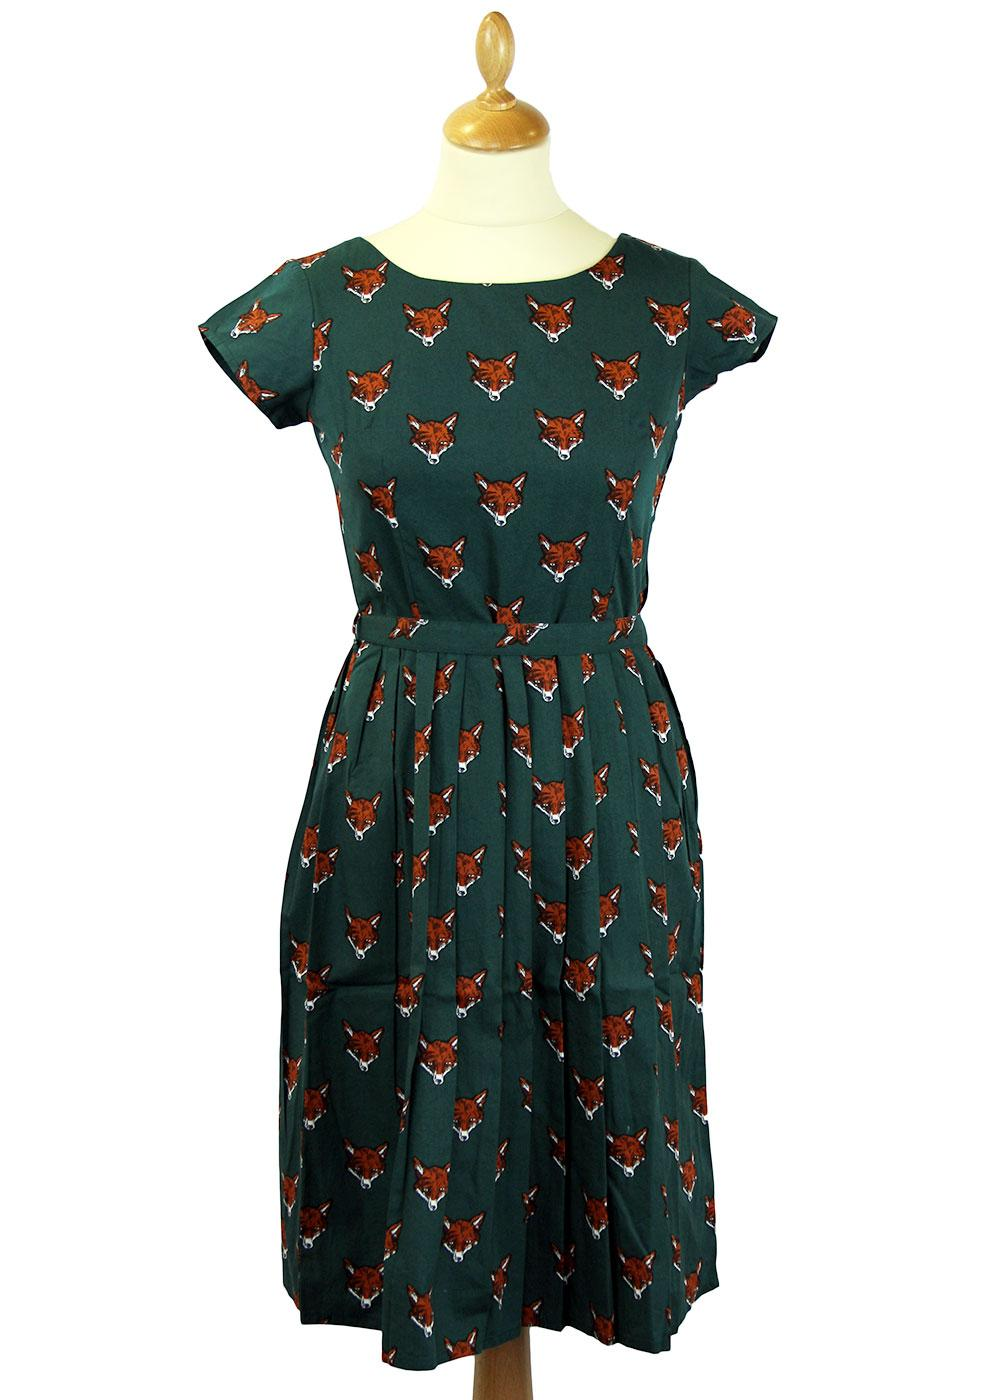 Foxy Retro 1950s Vintage Summer Tea Dress